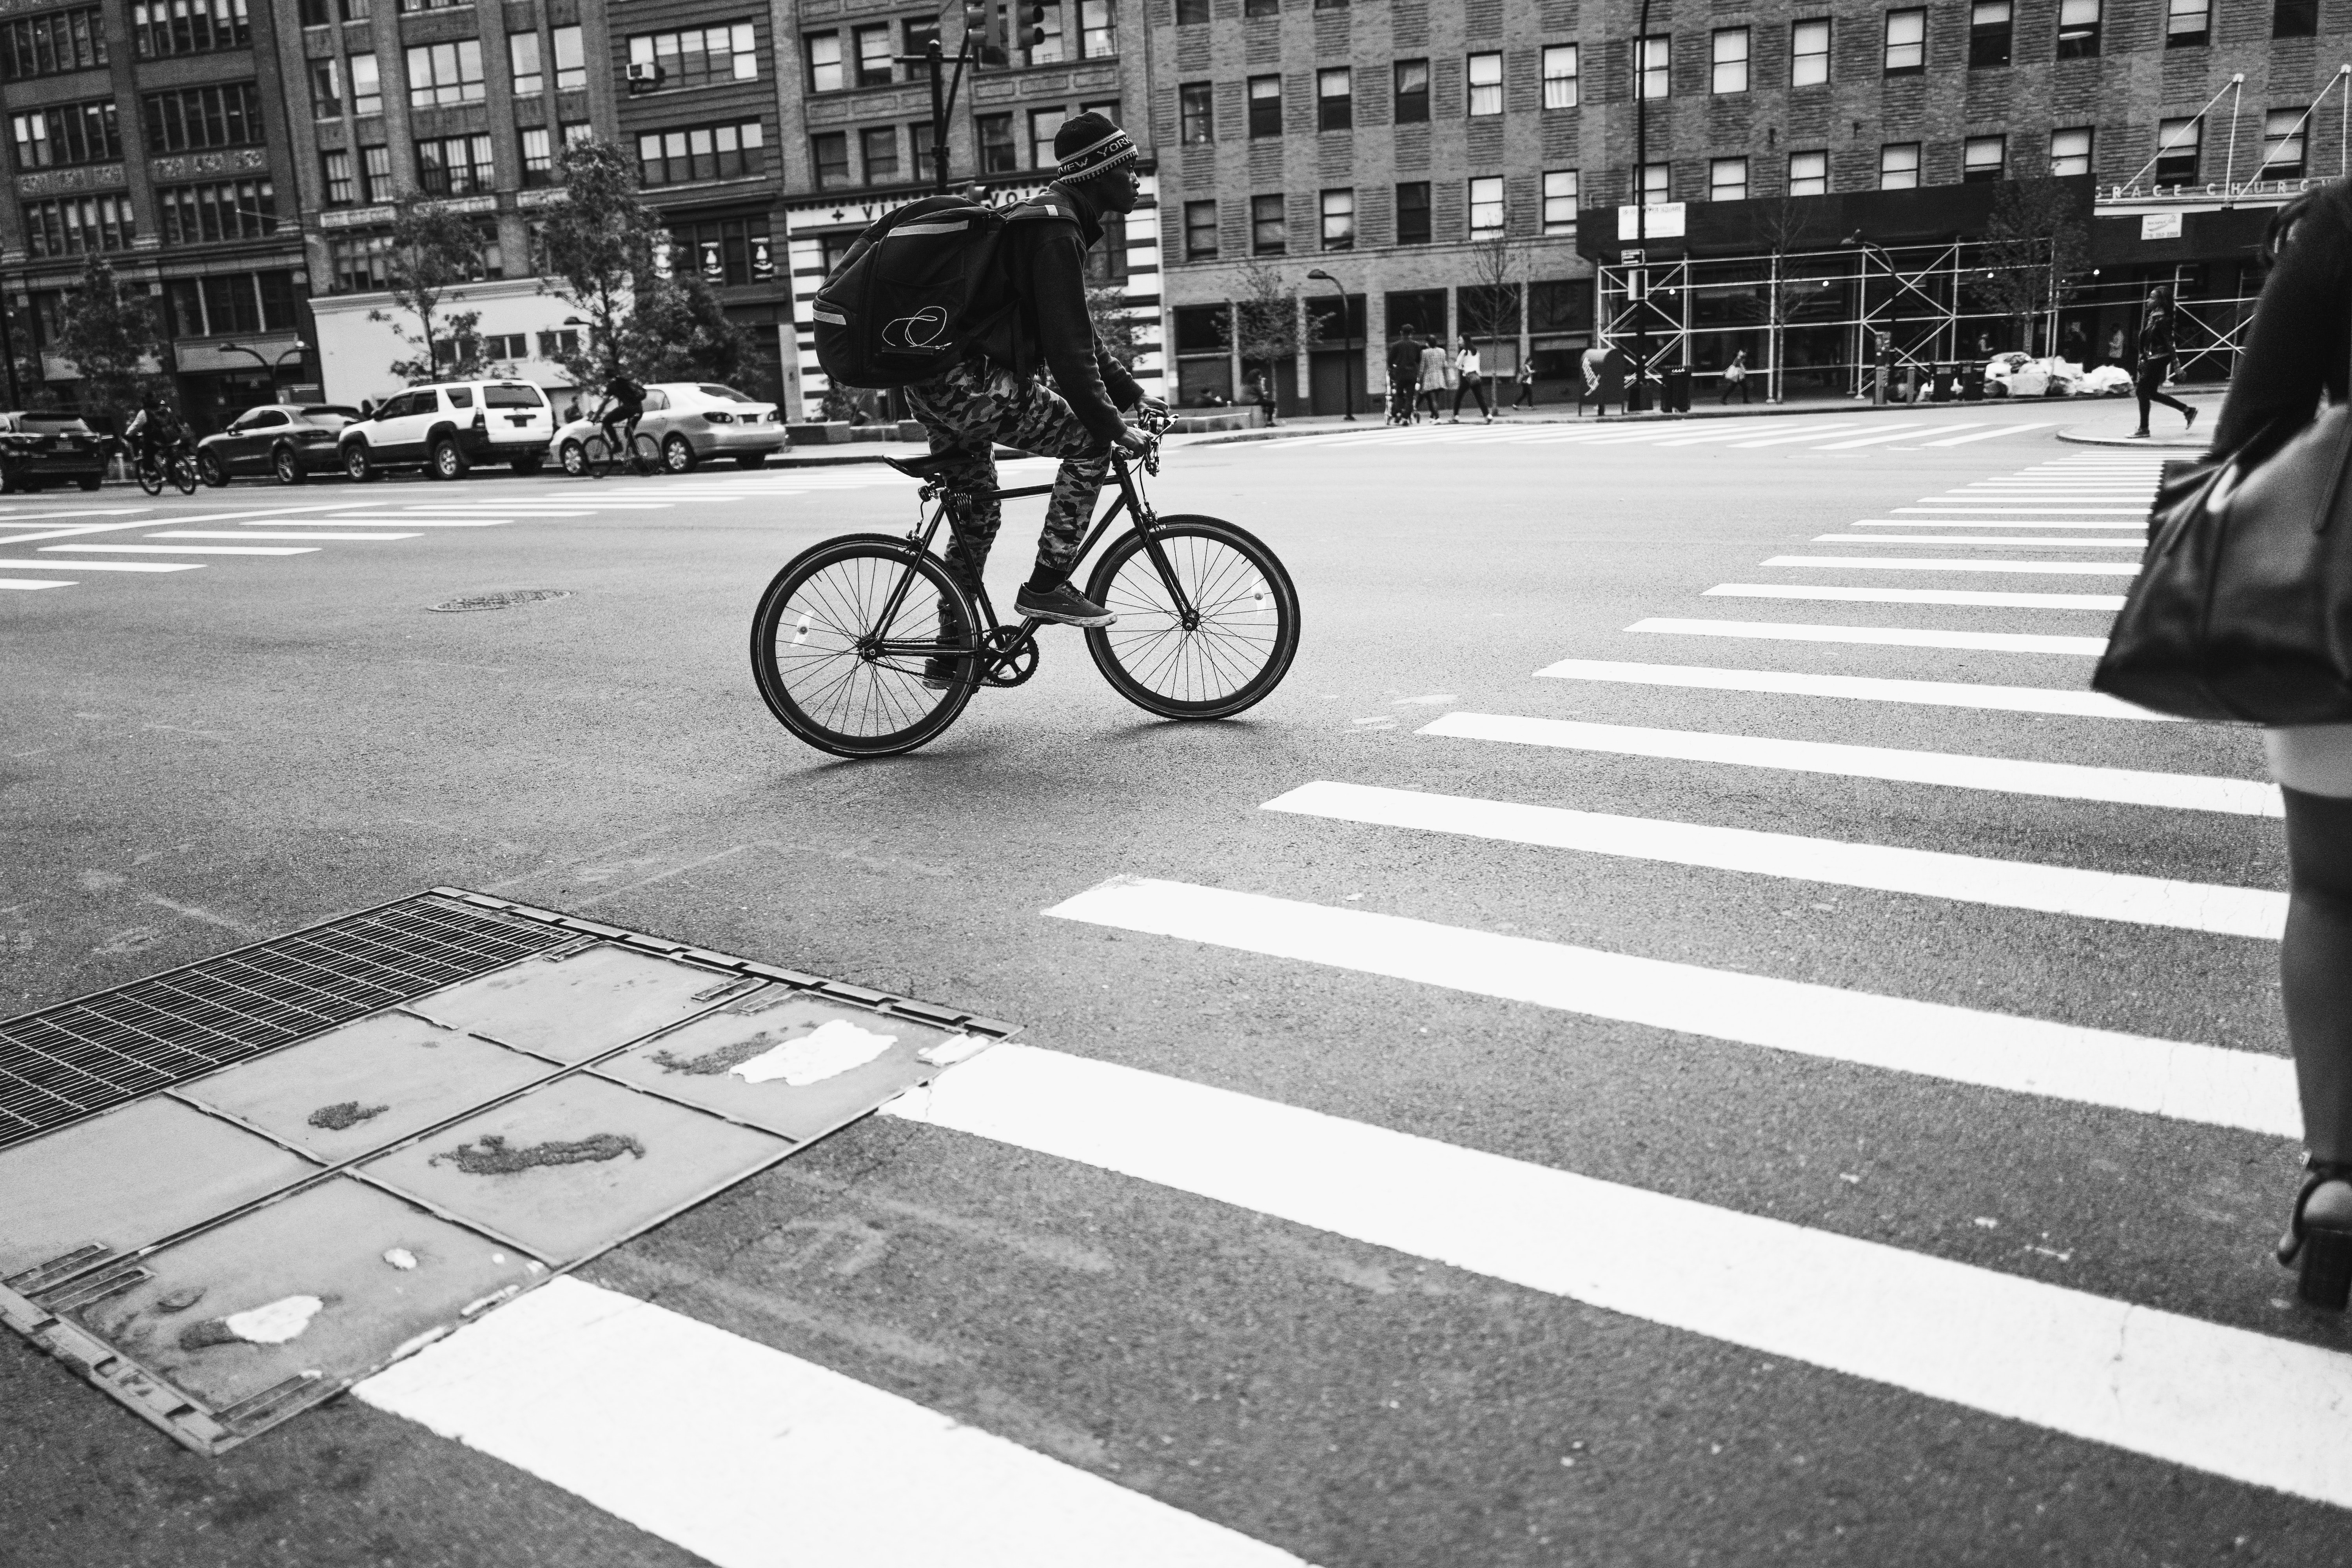 grayscale photography of man riding bicycle crossing pedestrian lane